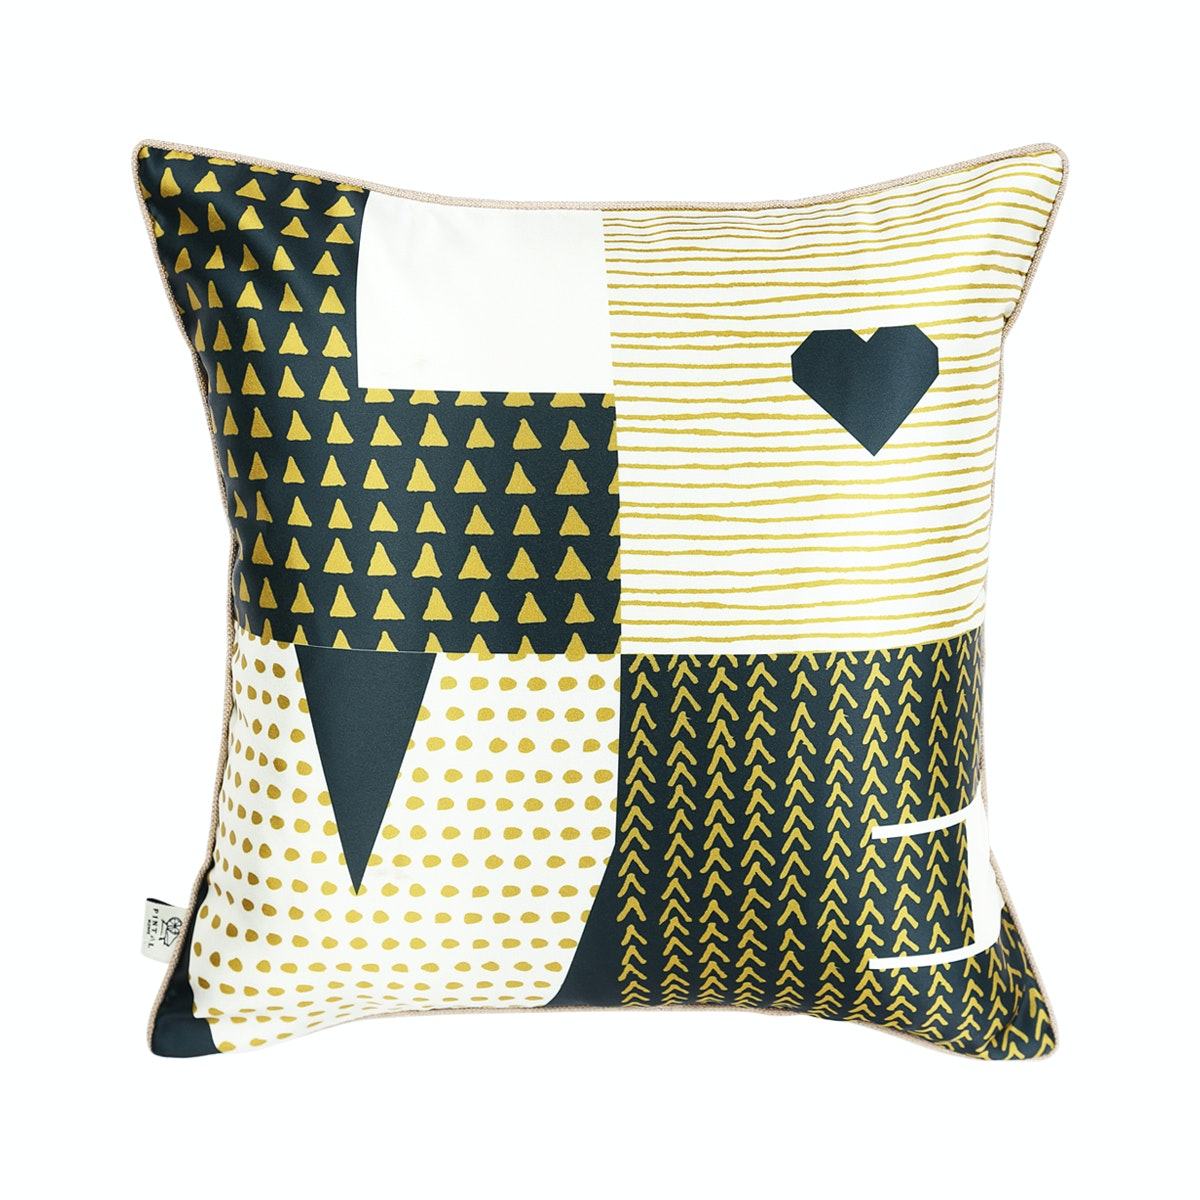 Pintal Home Sarung Cushion Love Black Gold 40x40cm